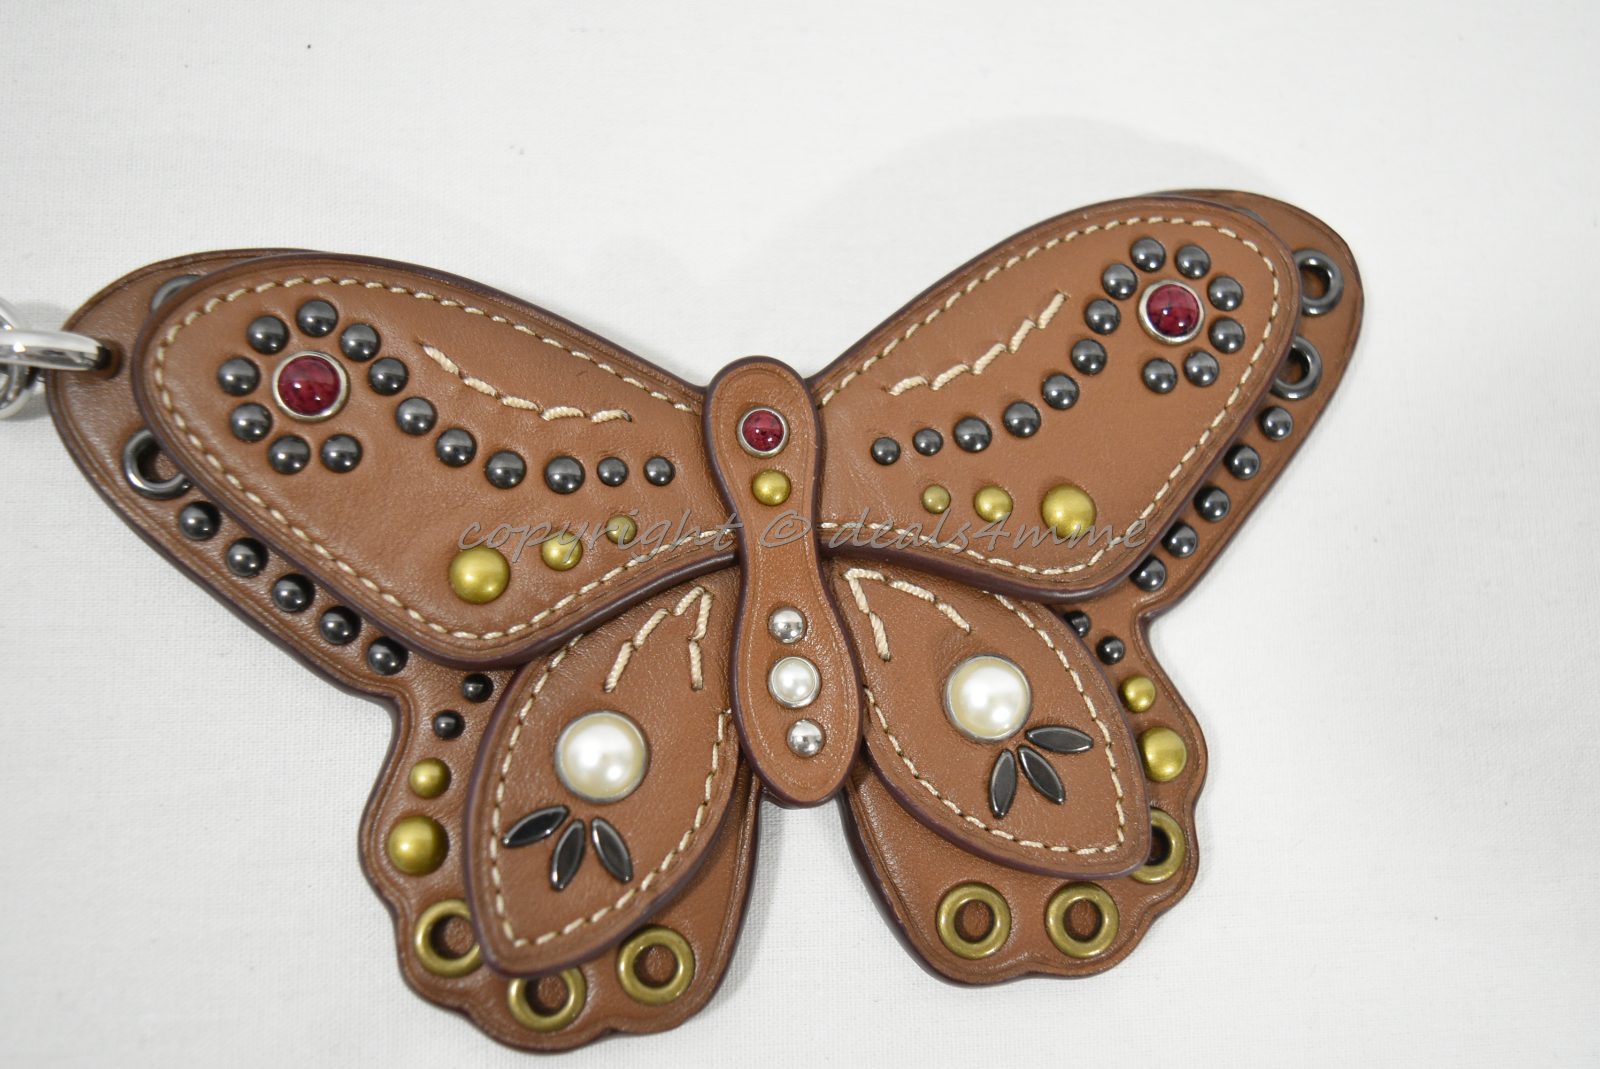 Coach F58996 /F58997 Studded Leather Butterfly Keyring/Key-Clip/ Bag Charm Brown image 14